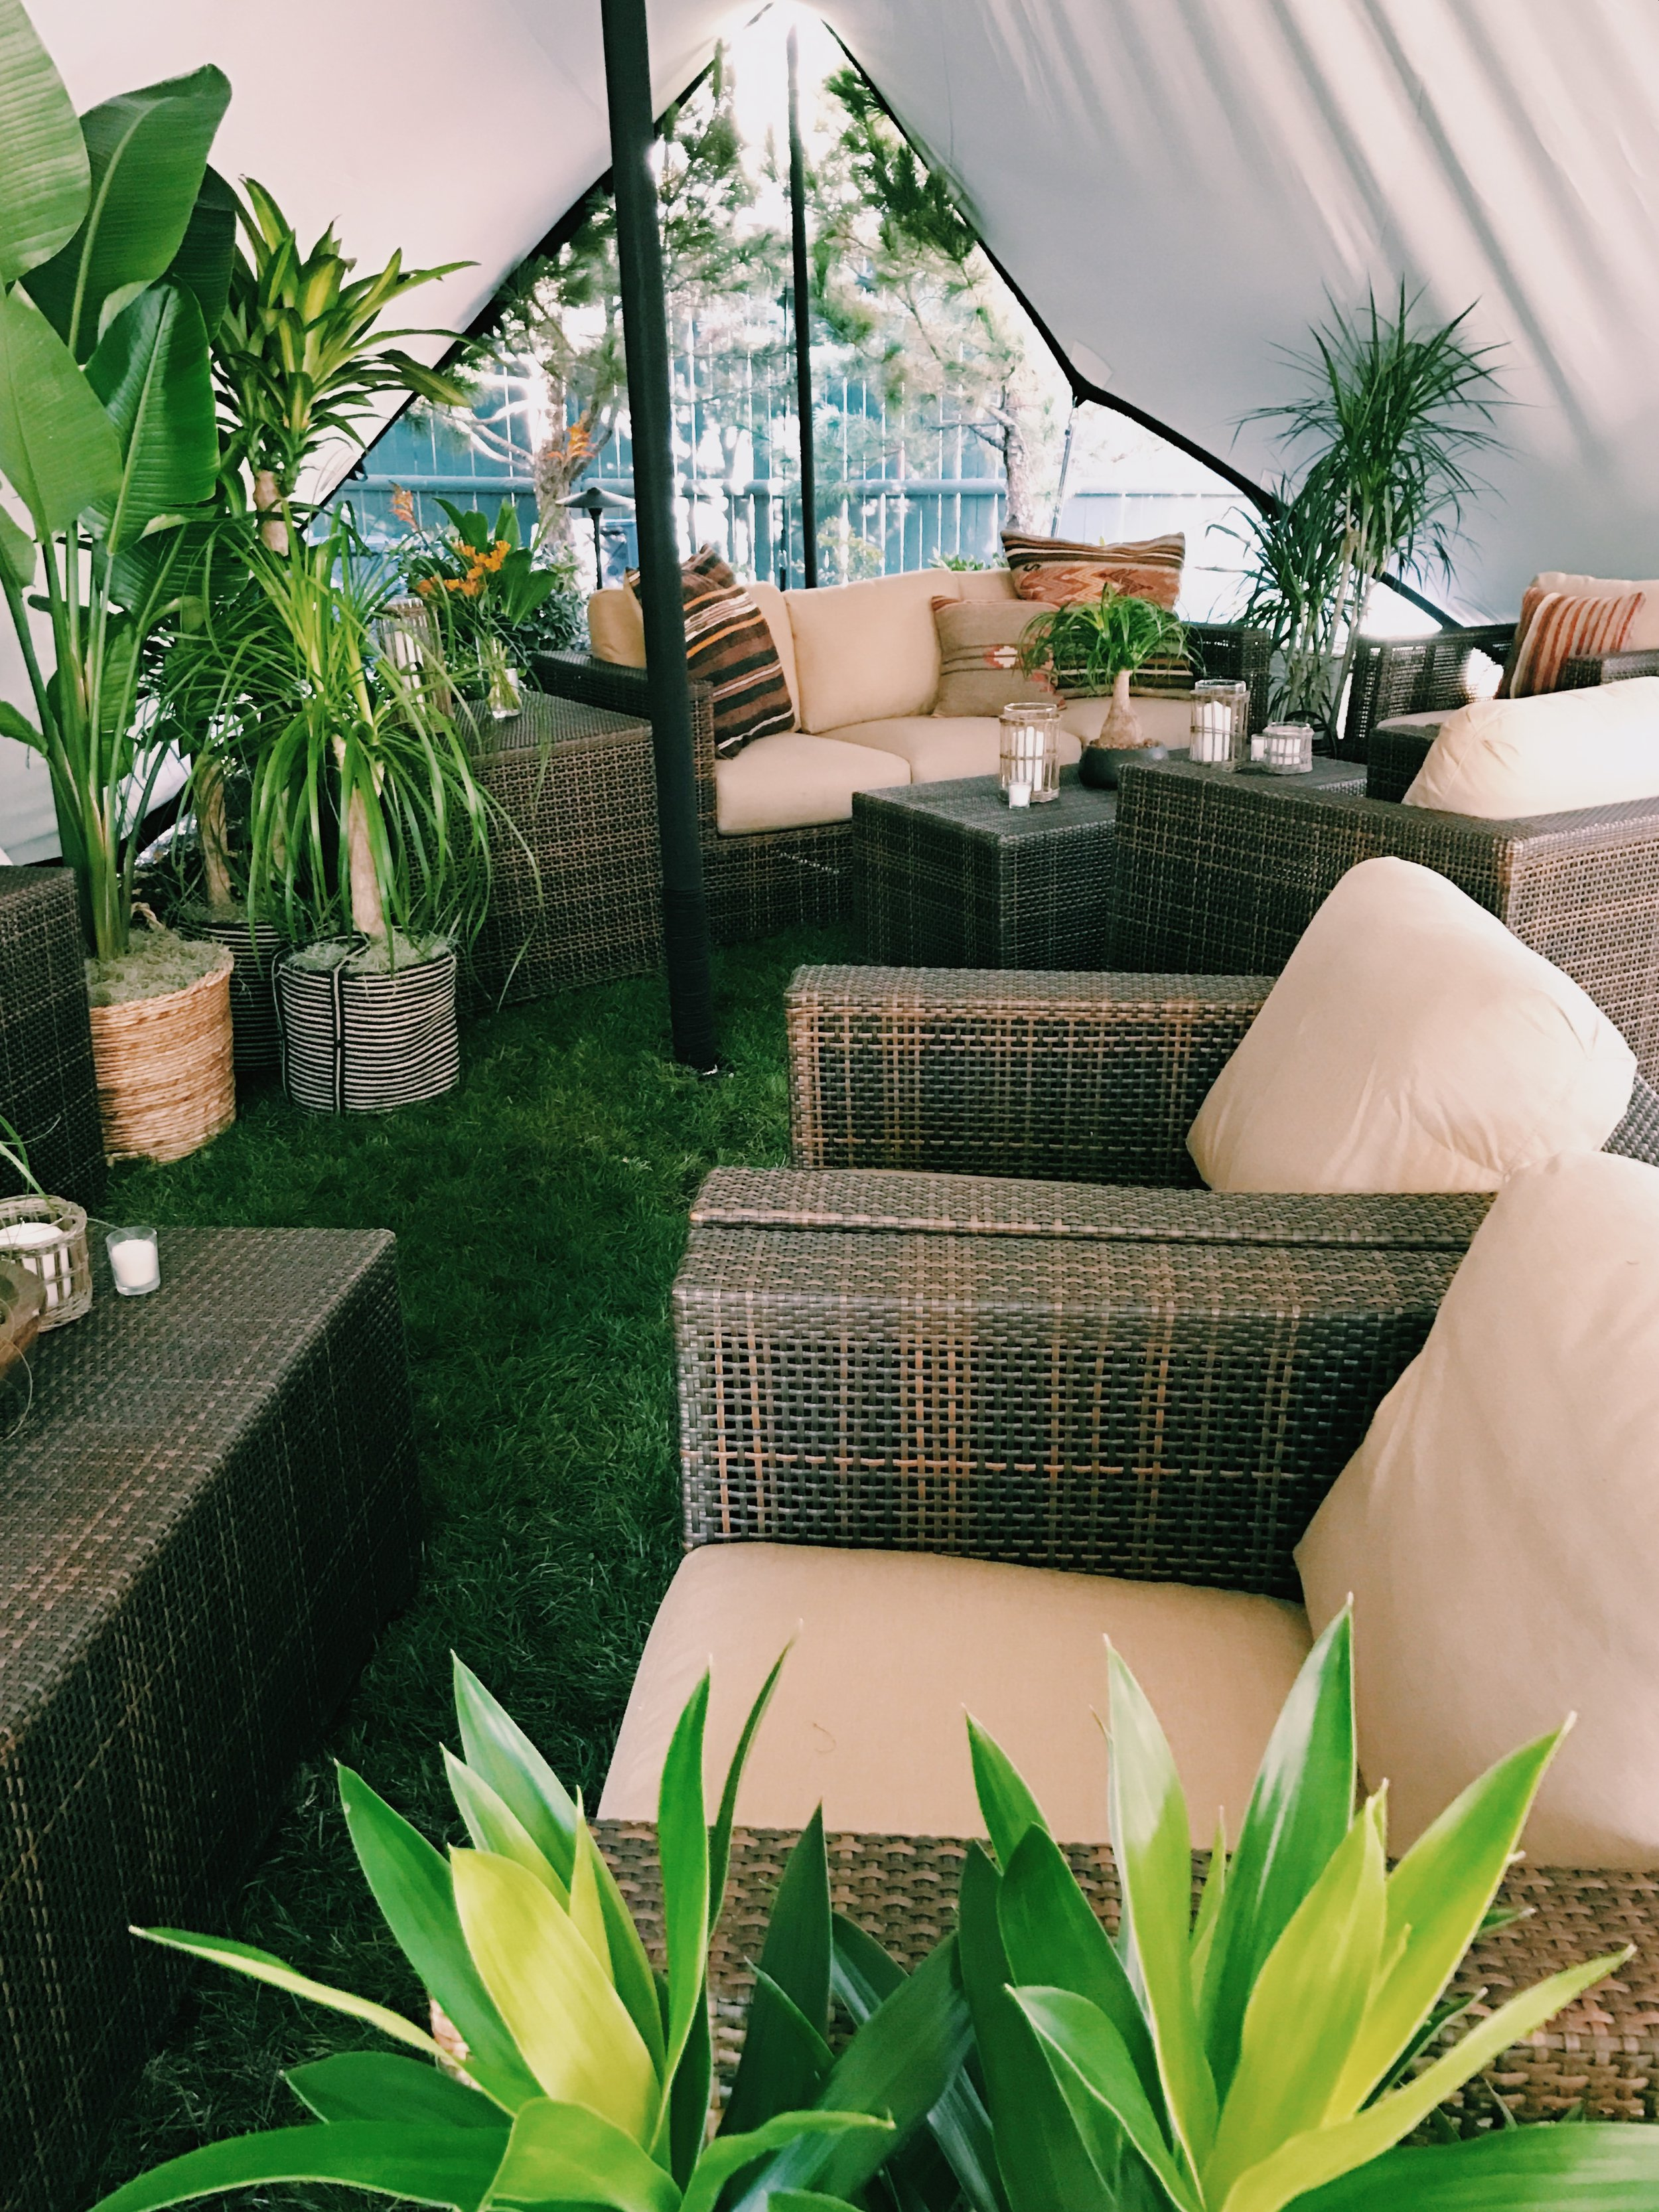 Outdoor retreat - This tented backyard space served as a breakout meeting space for a VIP meeting